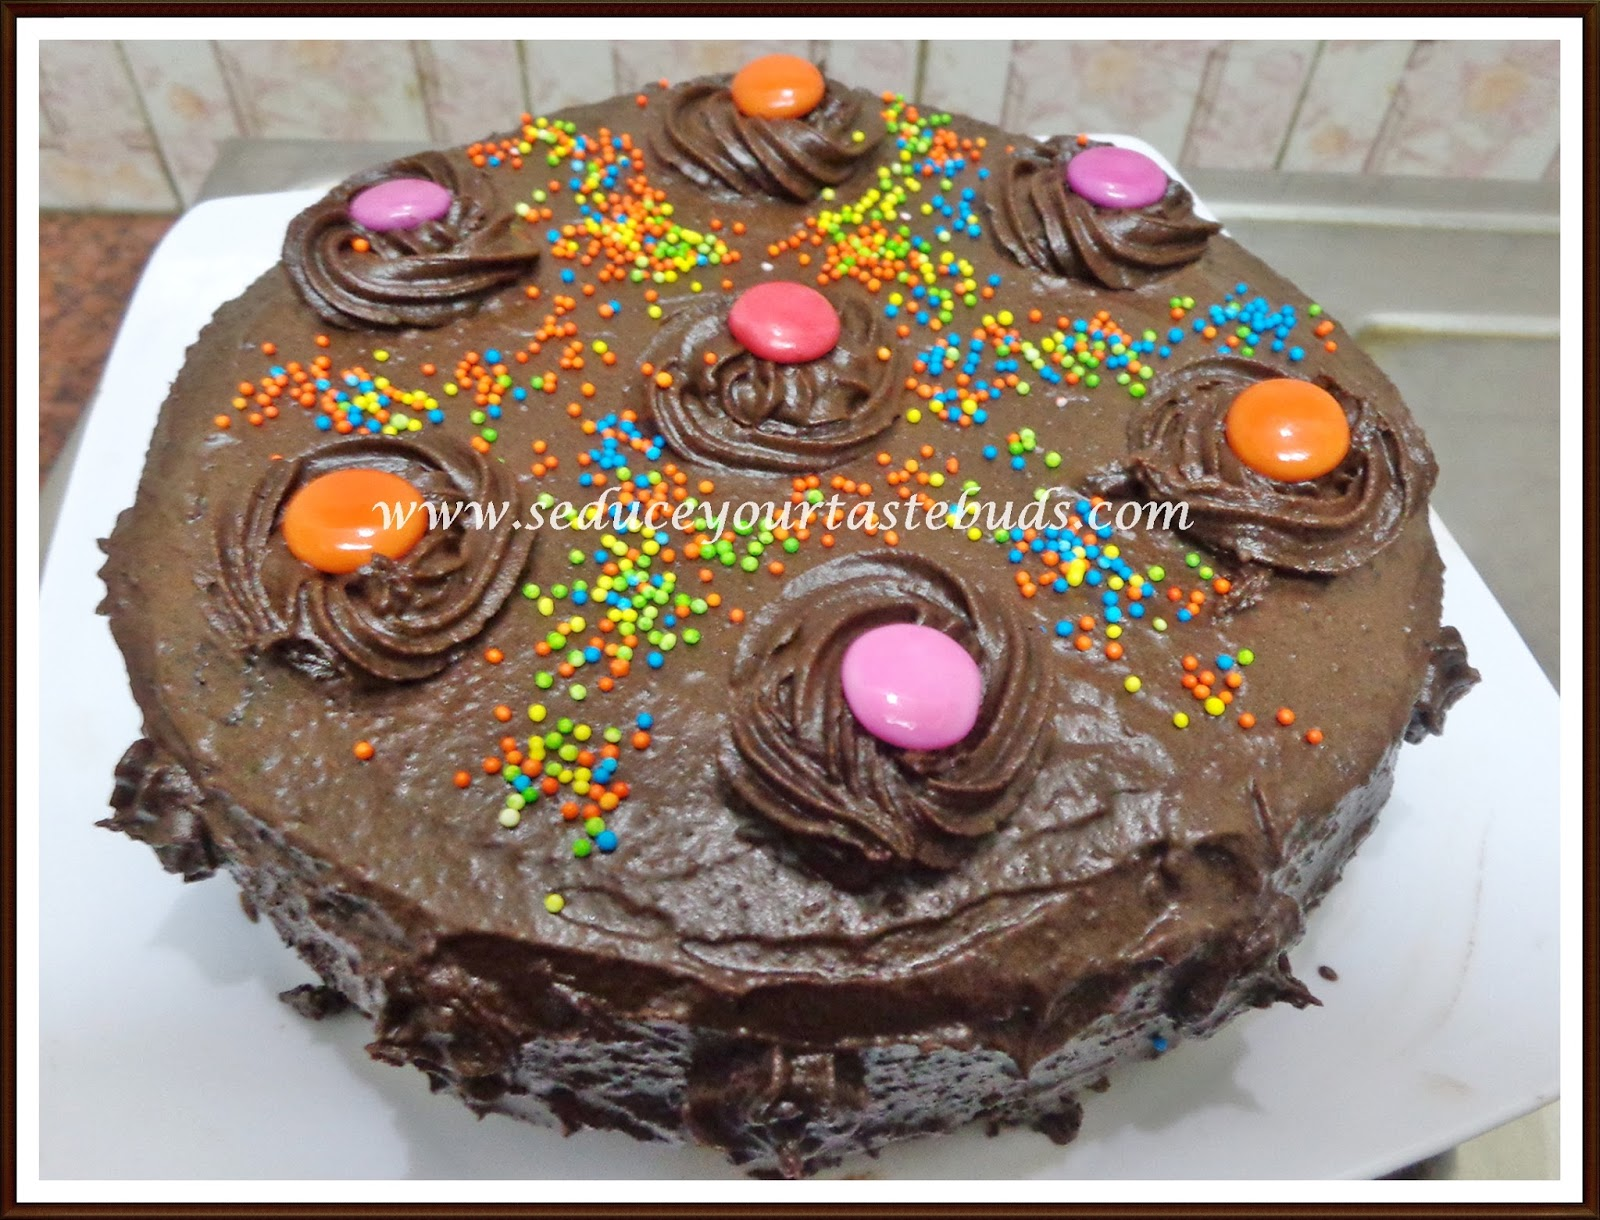 Eggless Chocolate Cake with Chocolate Frosting - Seduce Your ...